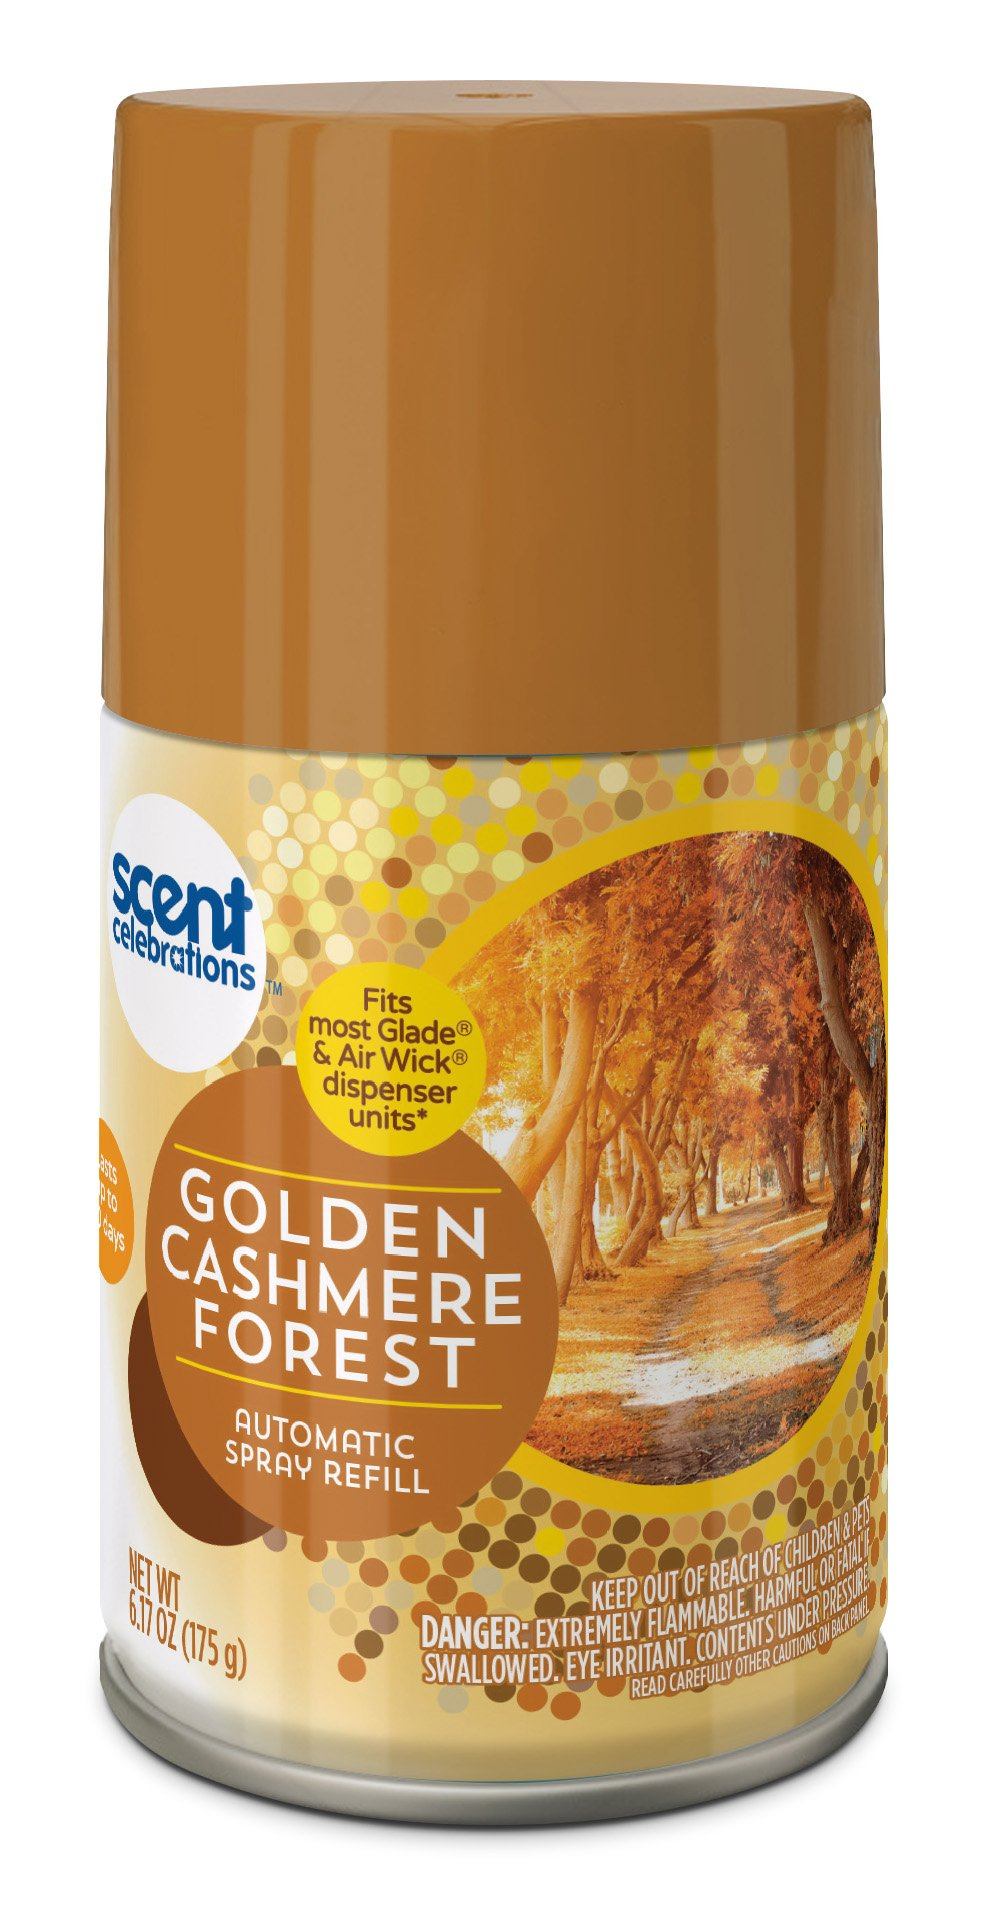 Scent Celebrations Amber Woods Automatic Spray Refill, Golden Cashmere Forest, 6.2 Fluid Ounce (Pack of 6)